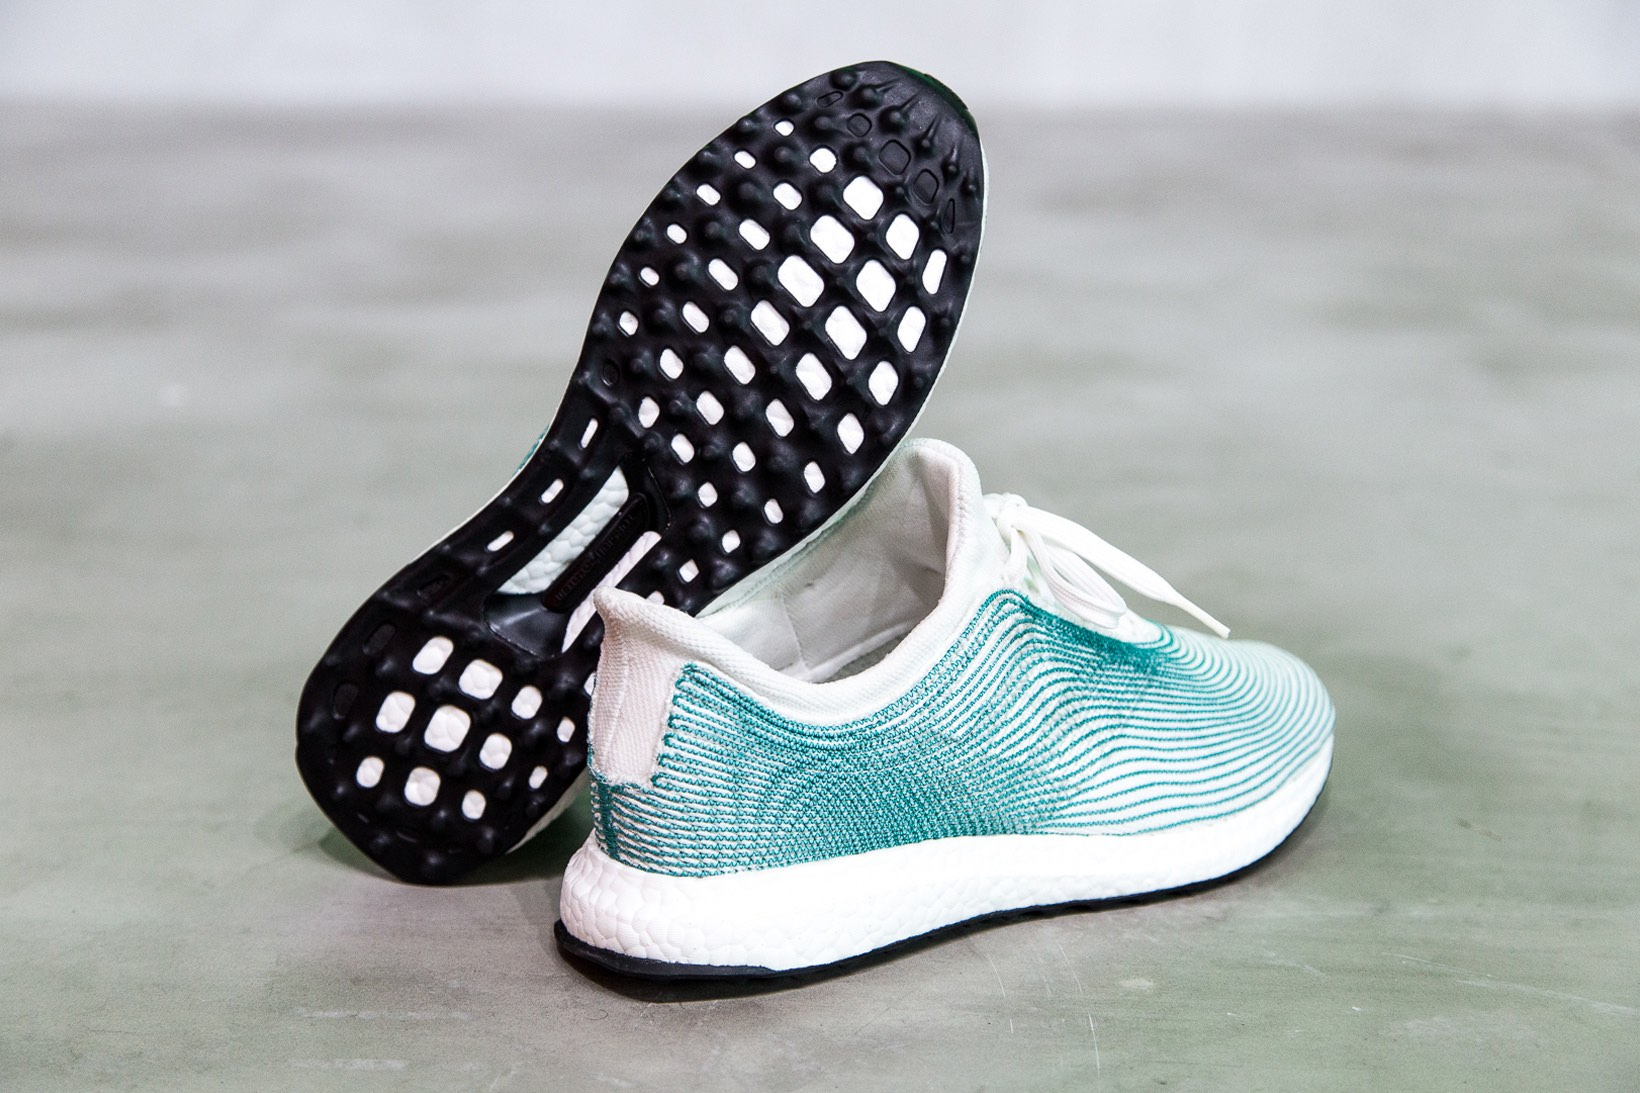 closer-look-at-adidas-x-parley-collaboration-world-oceans-day-7